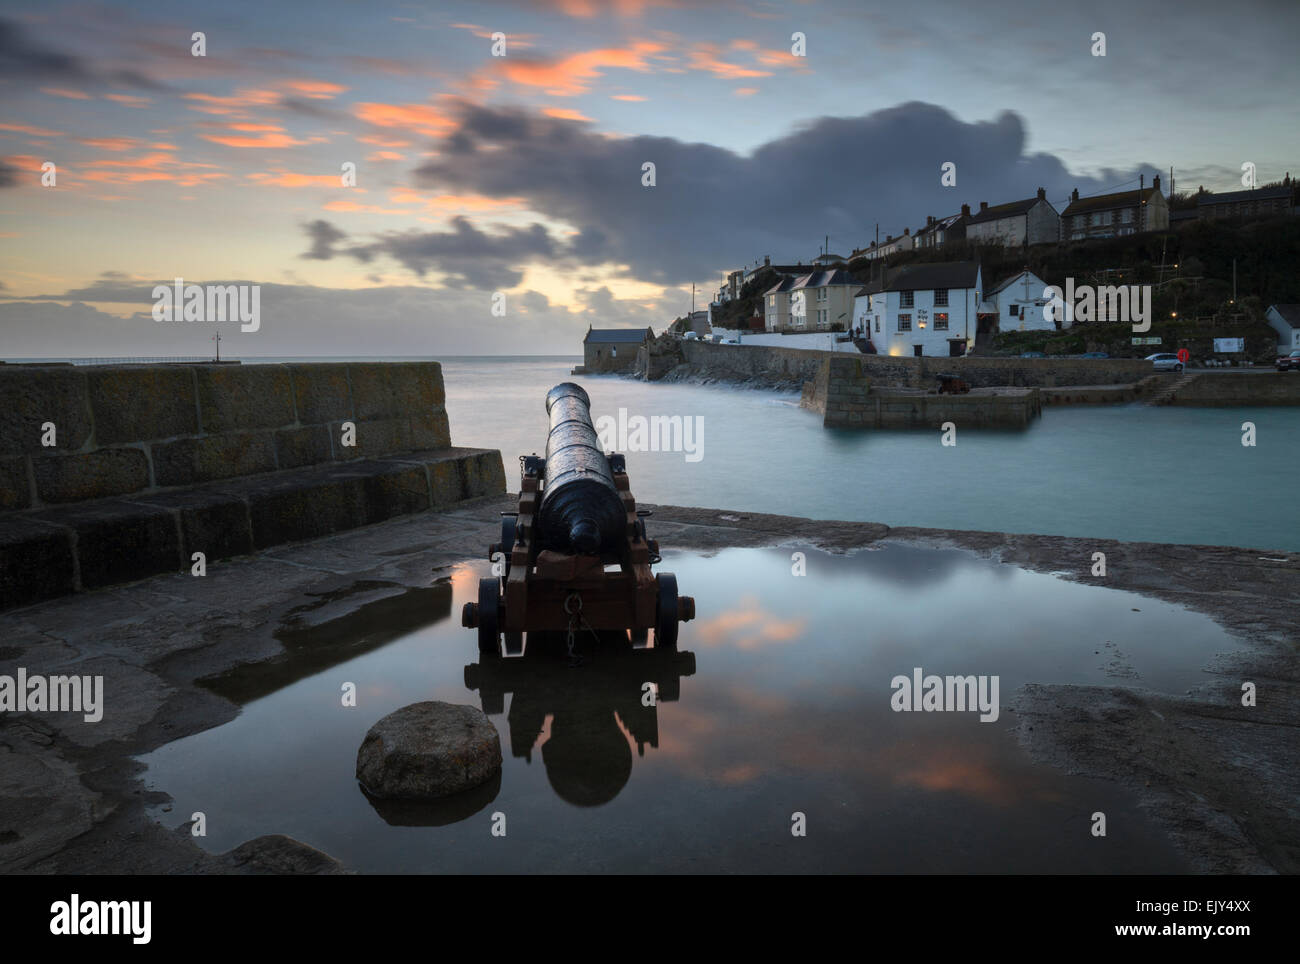 A Canon at the entrance to the harbour at Porthleven on Cornwall's Lizard Peninsular, reflected in a large pool - Stock Image